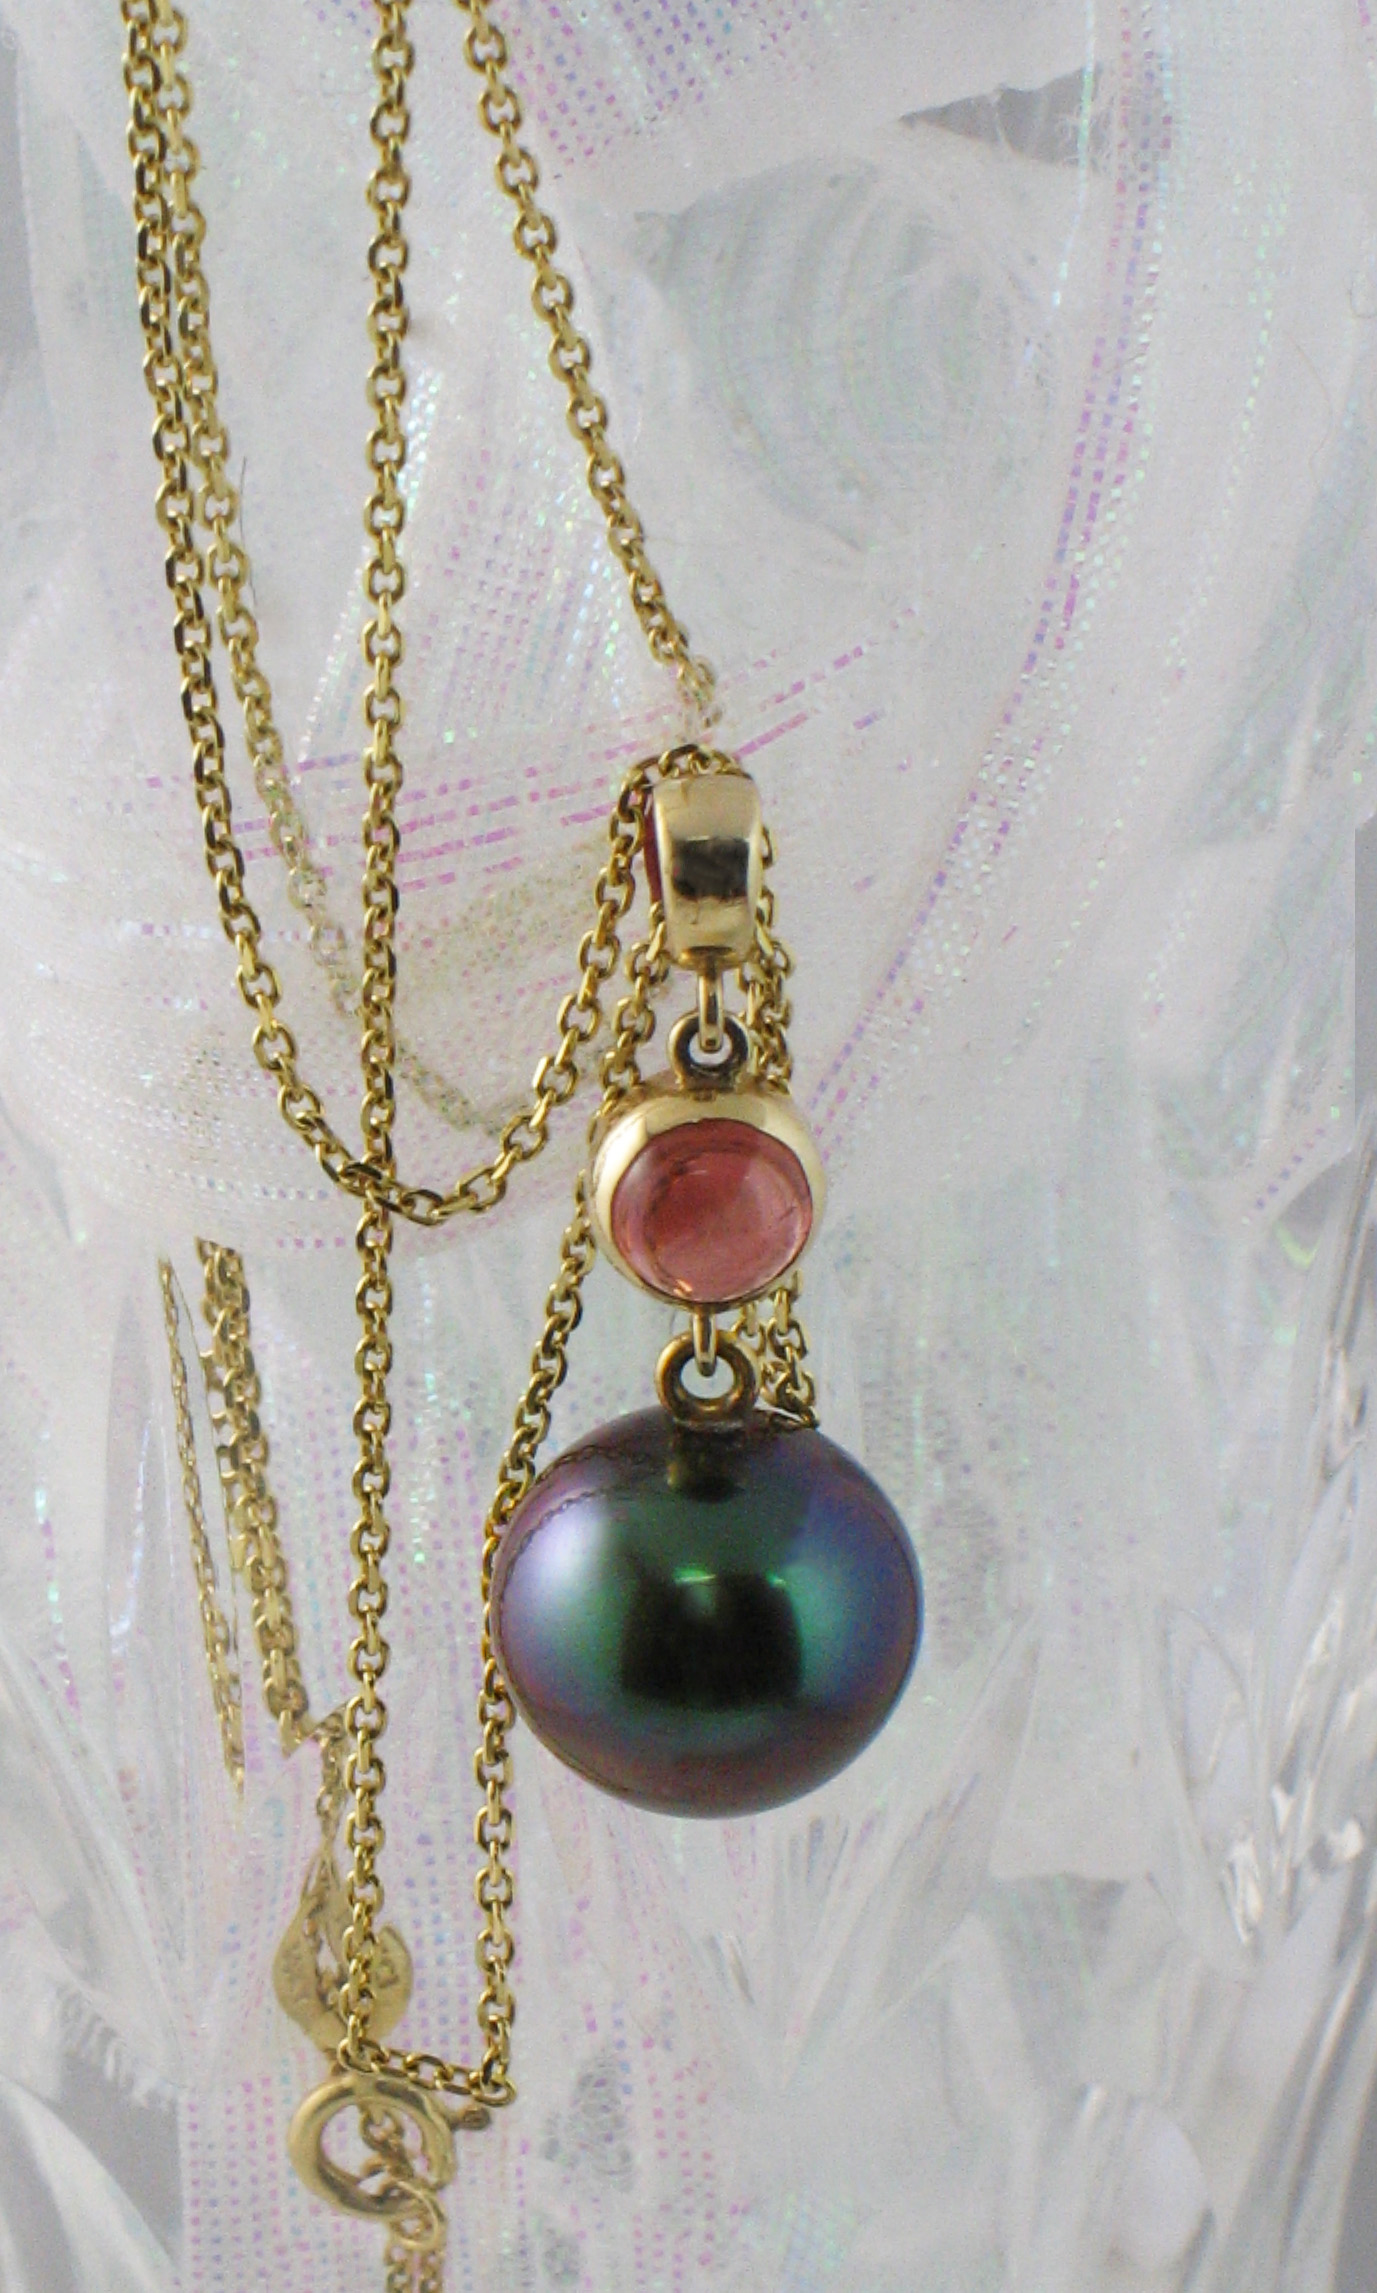 Tahitian Pearl Pendant with Tourmaline Accent